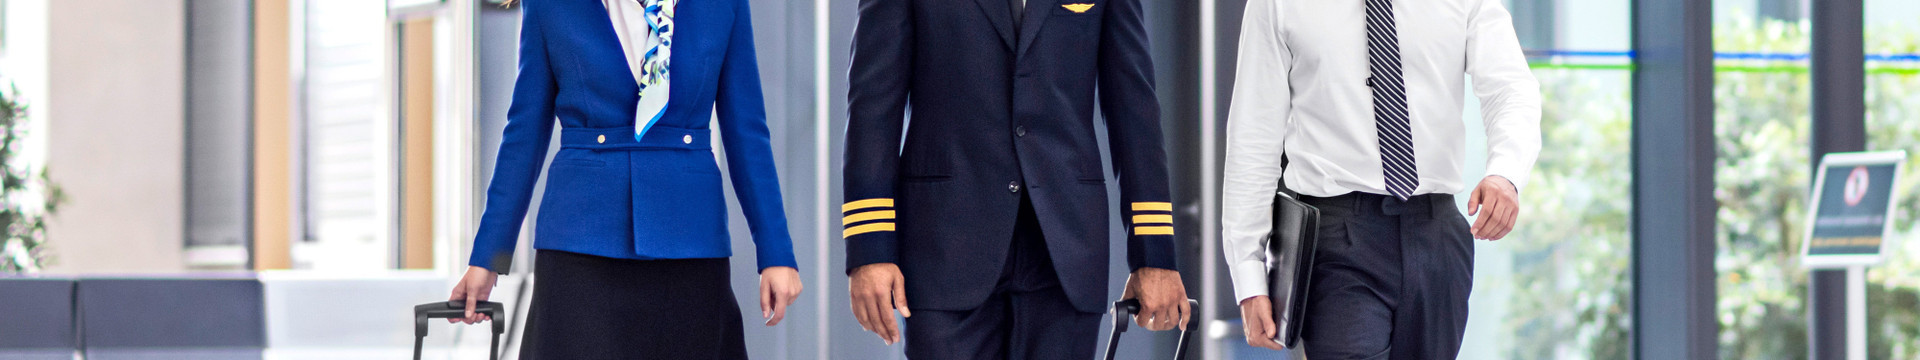 Airline Employee Discount Hotel Rates In Cocoa Beach | Airline Employees in Cocoa Beach